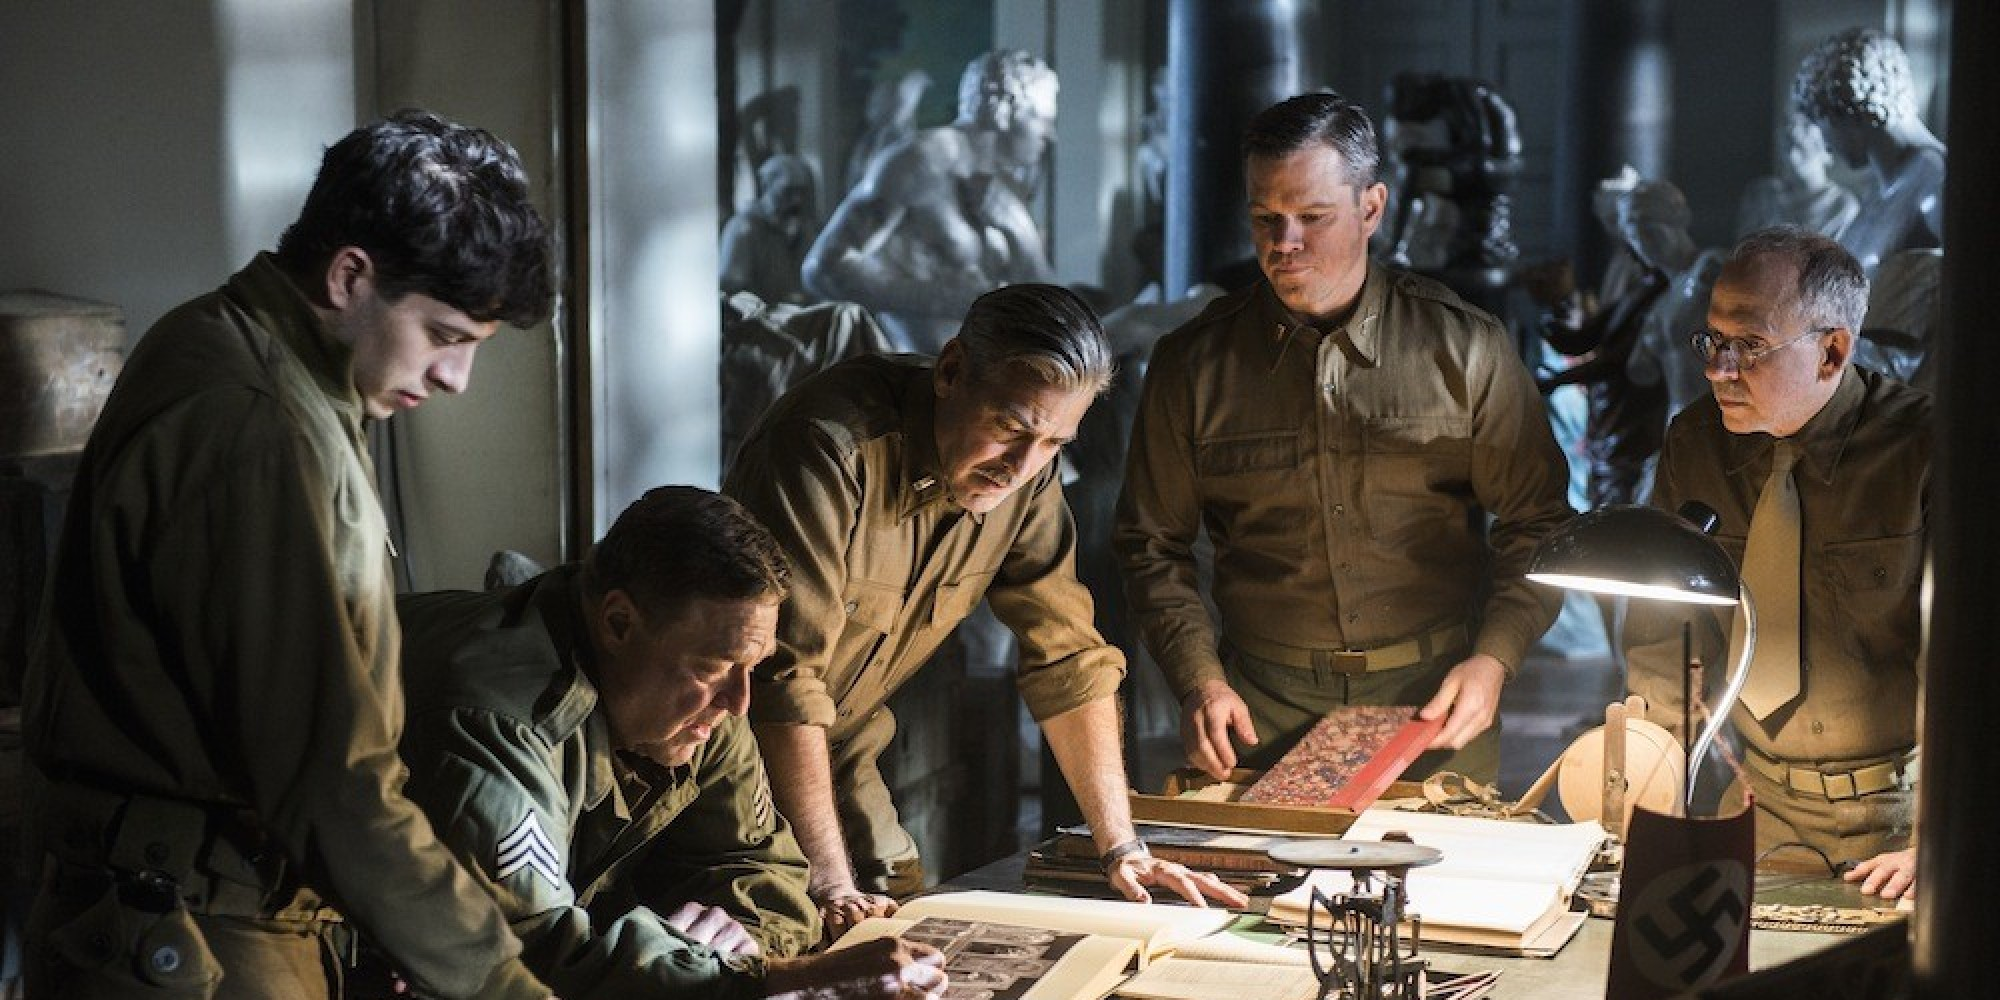 (l to r) Sam Epstein, John Goodman, George Clooney, Matt Damon and Bob Balaban in Columbia Pictures' action thriller THE MONUMENTS MEN.